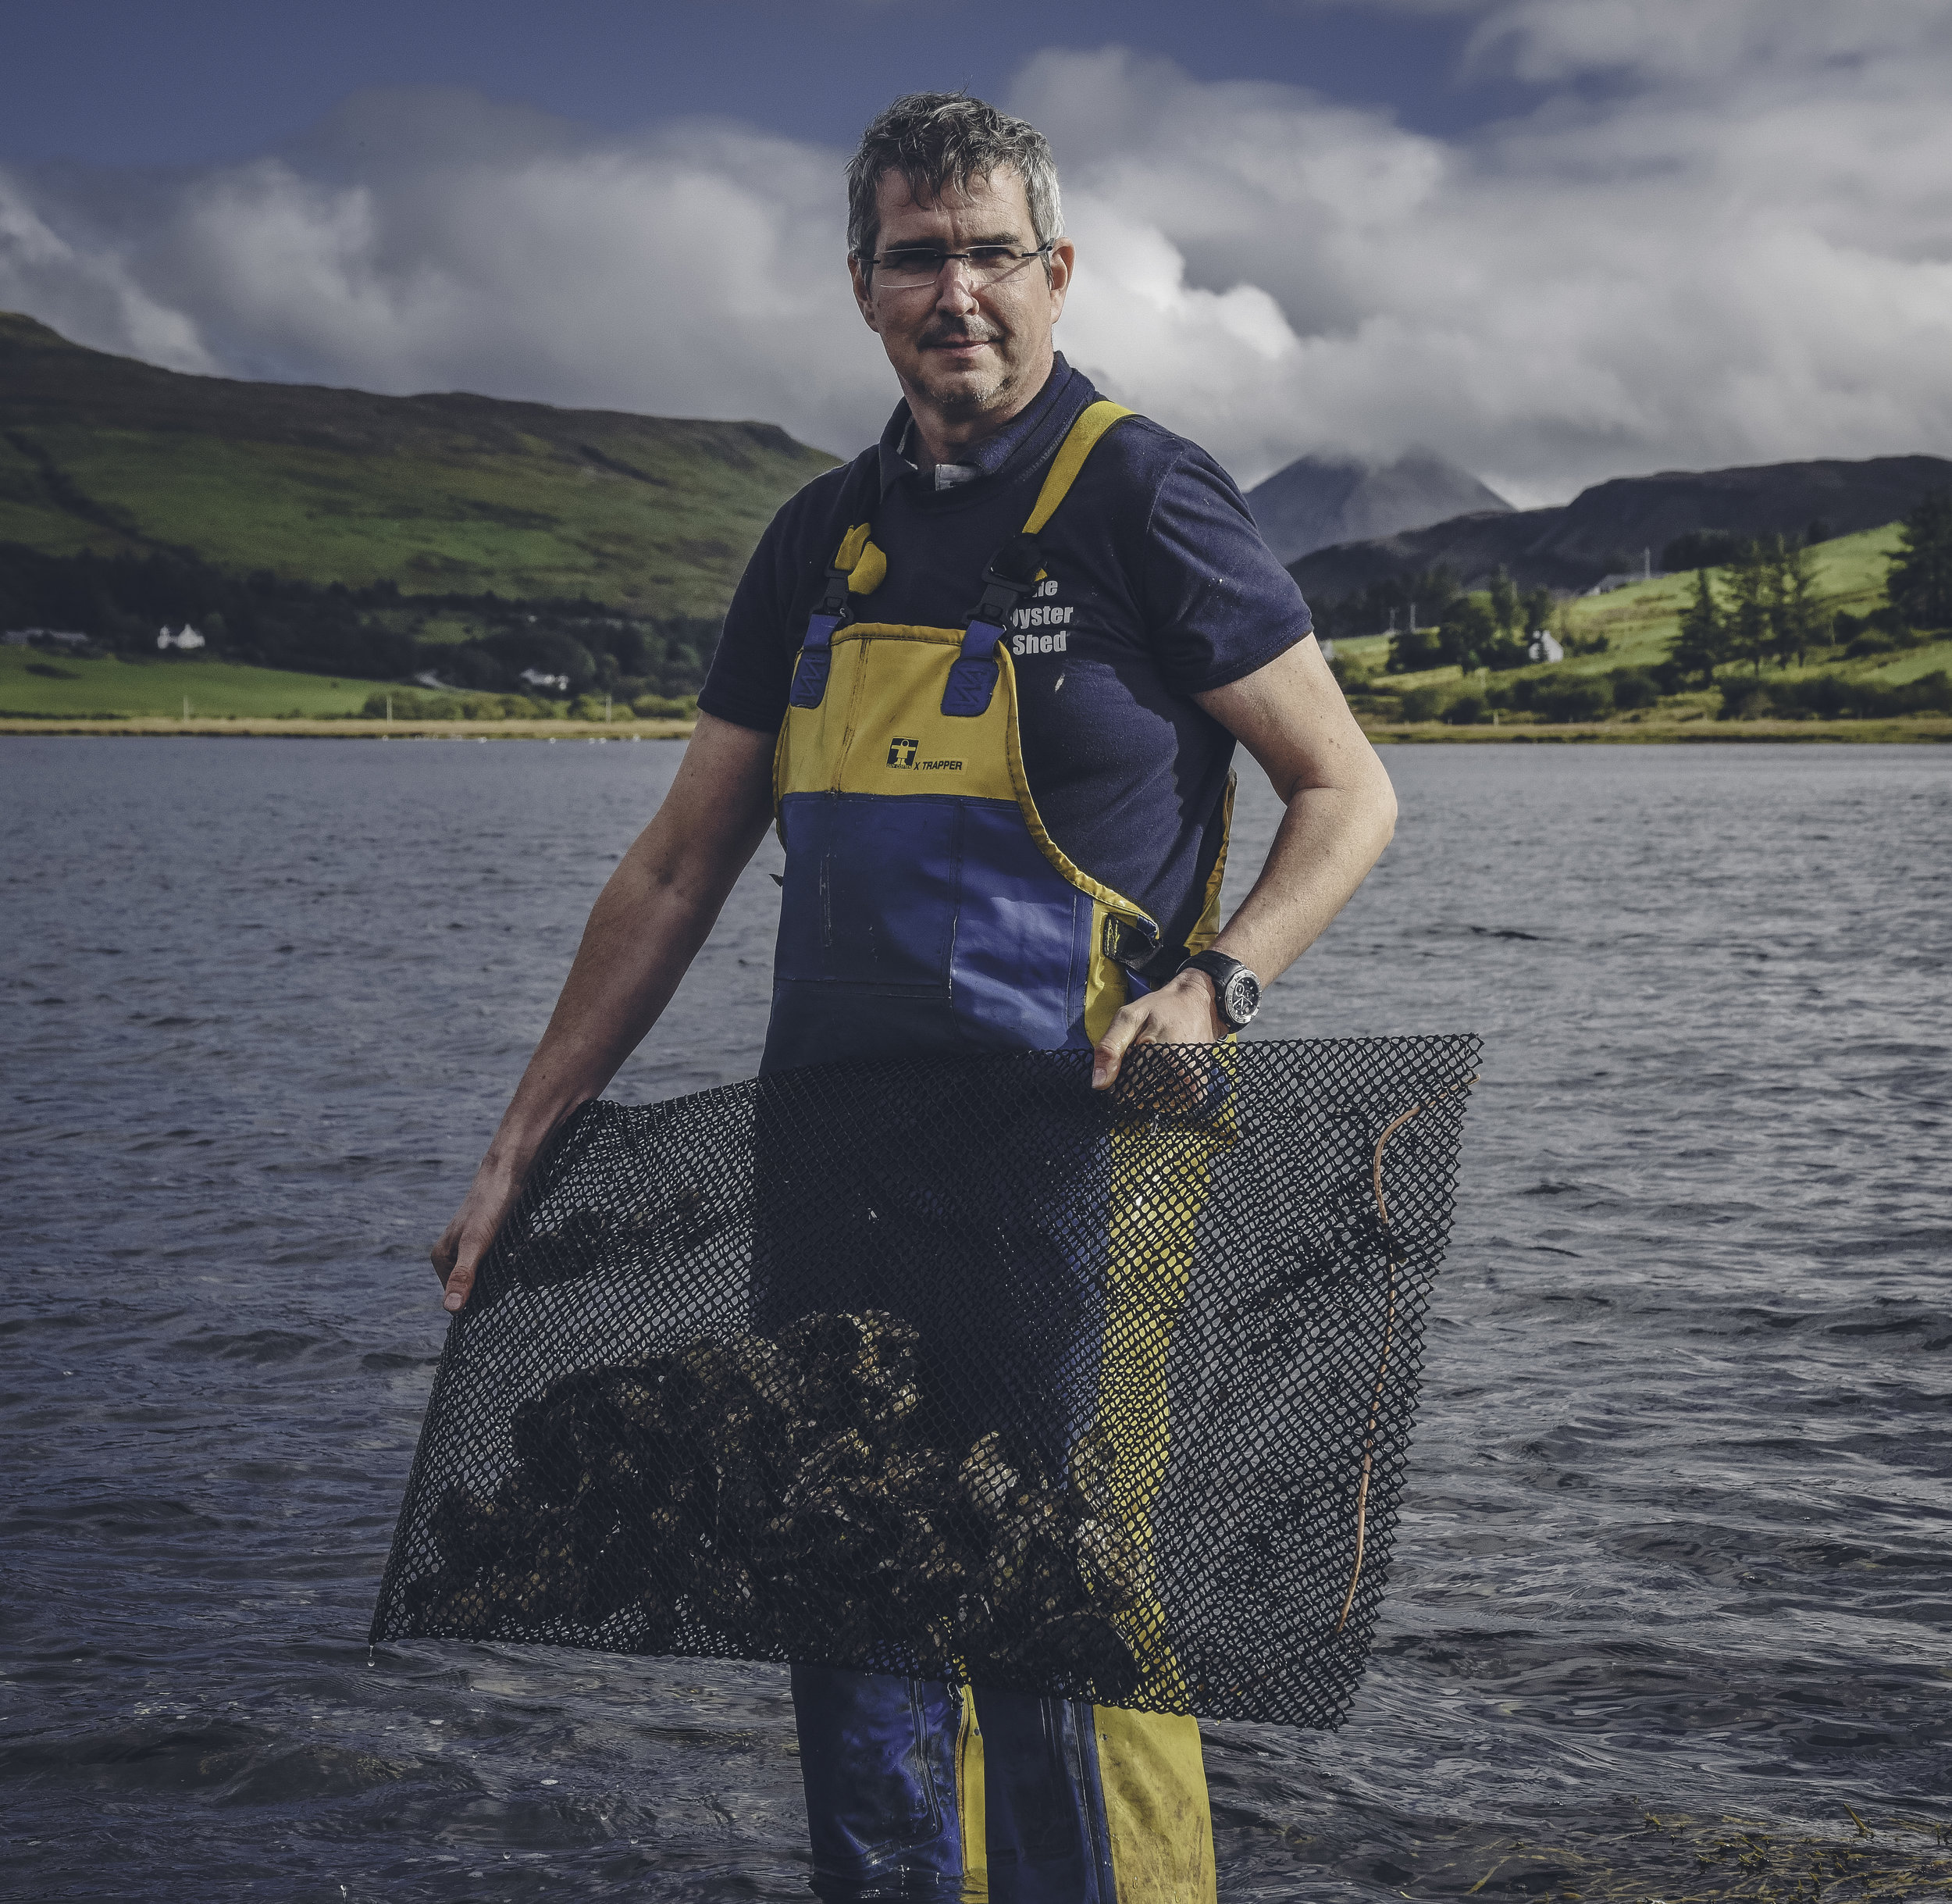 The Oysterman of Carbost - Written and photographed exclusively for the Telegraph